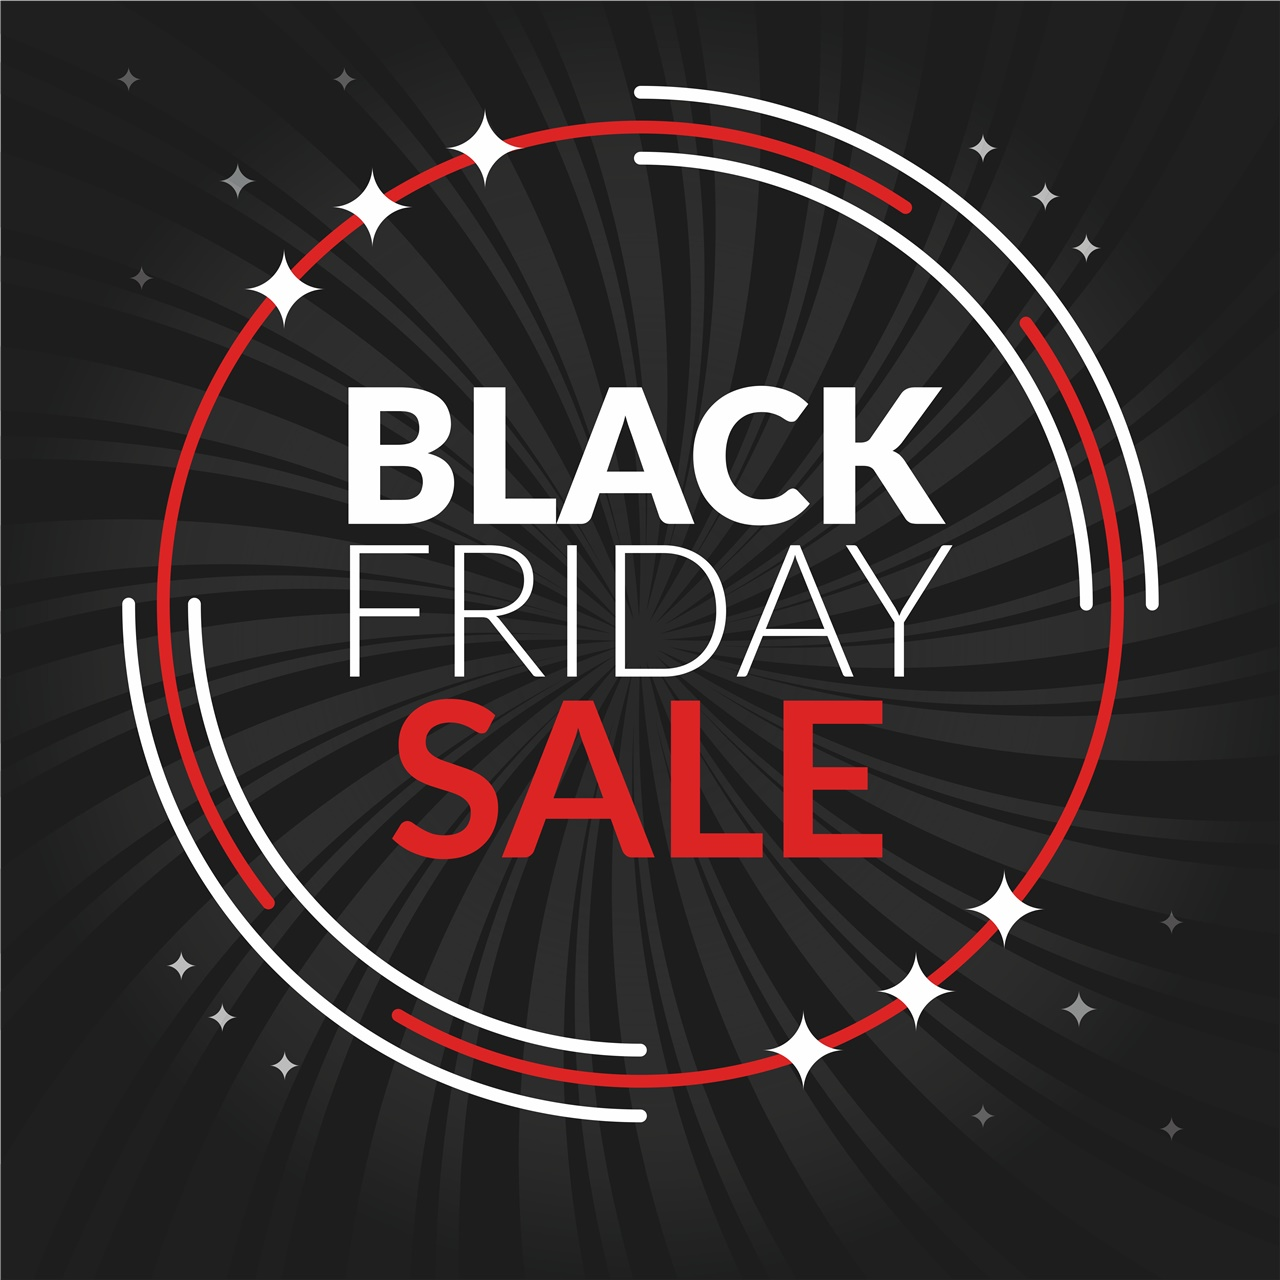 Adesivo removibile Black Friday Sale